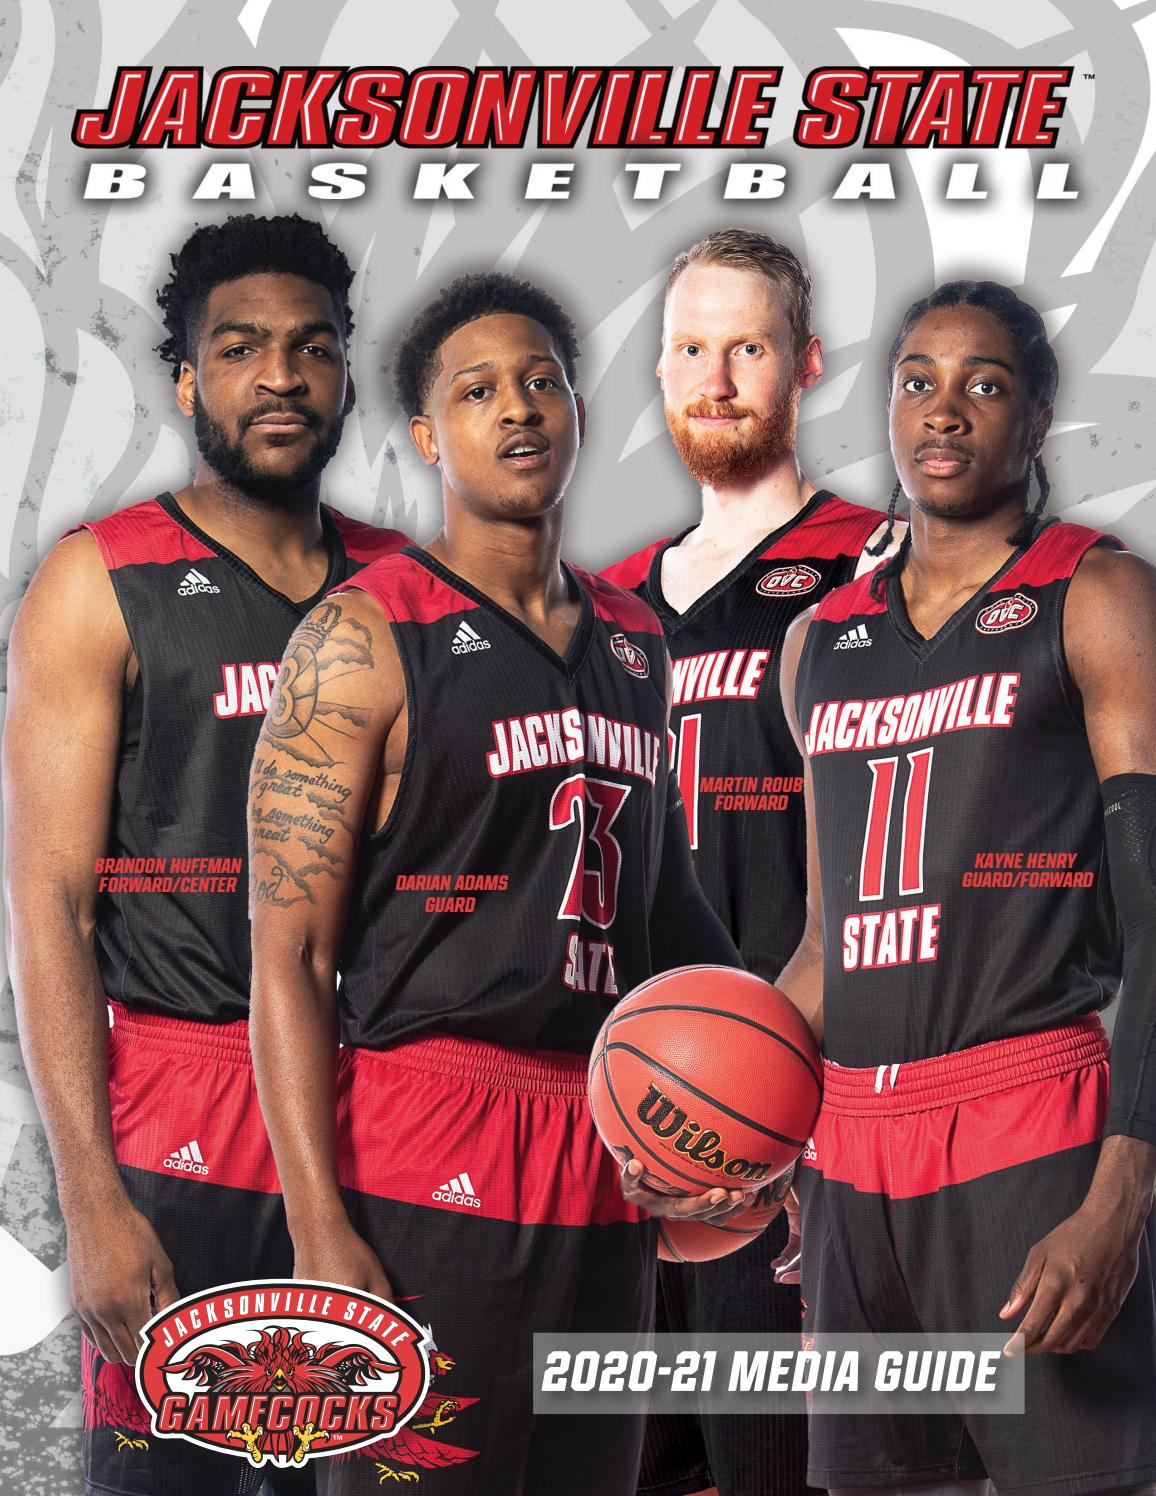 2020 21 Jacksonville State Men S Basketball Media Guide By Jacksonville State Athletics Issuu